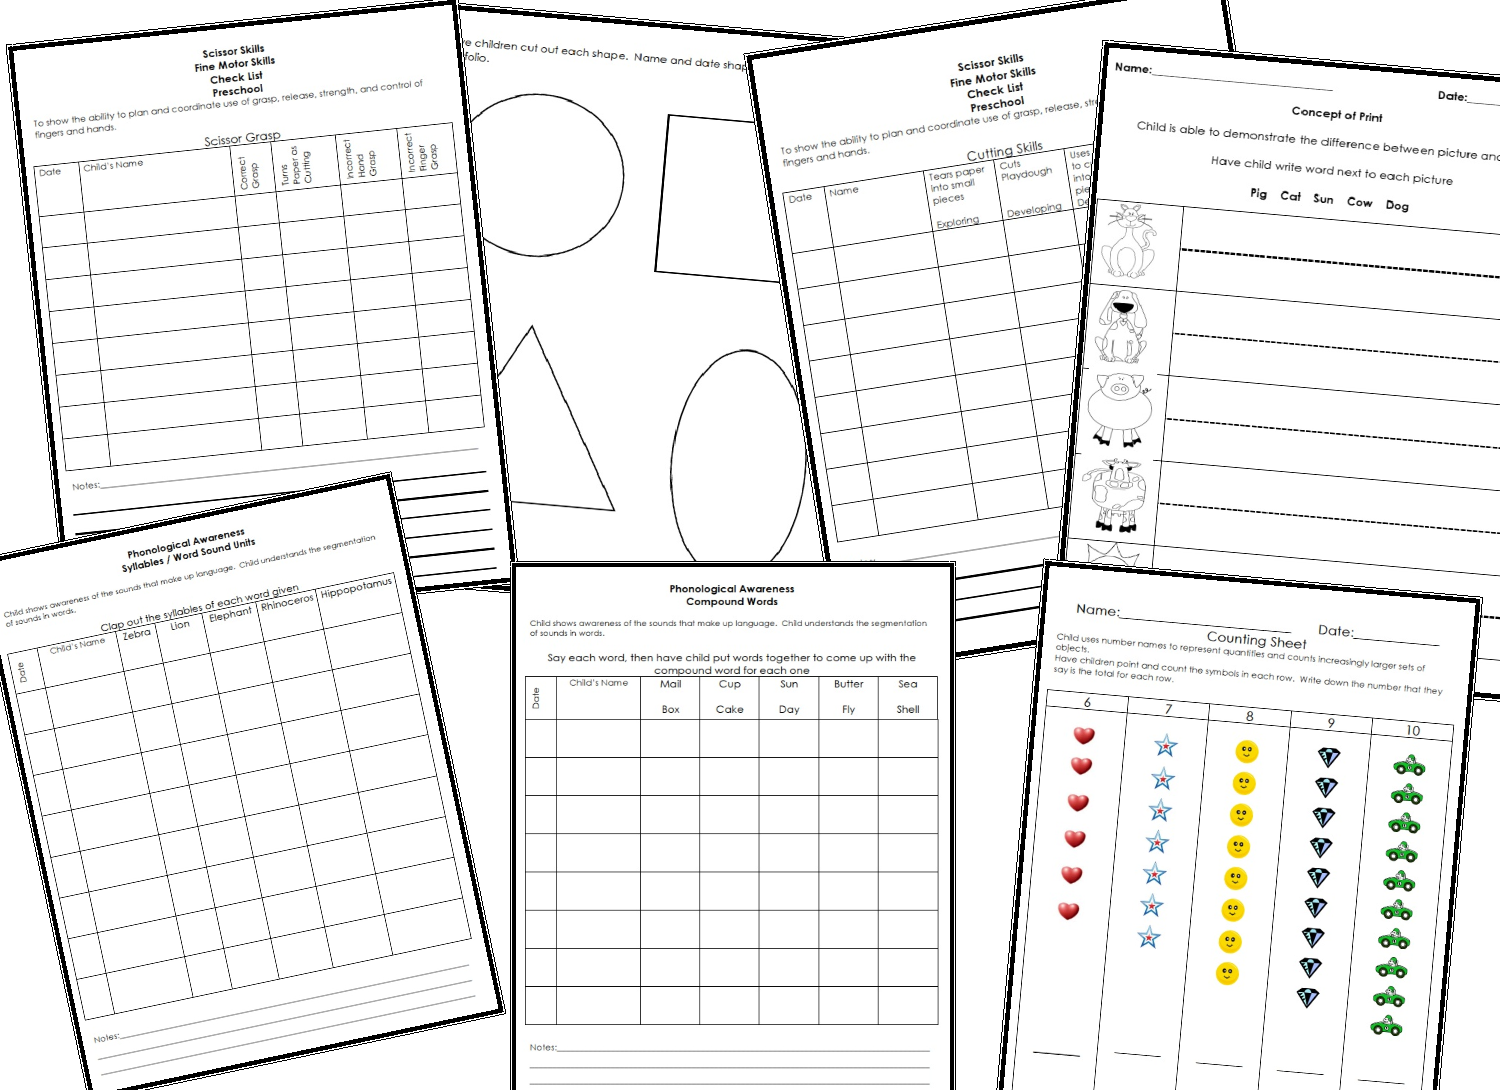 Learning and Teaching With Preschoolers: Checklist and